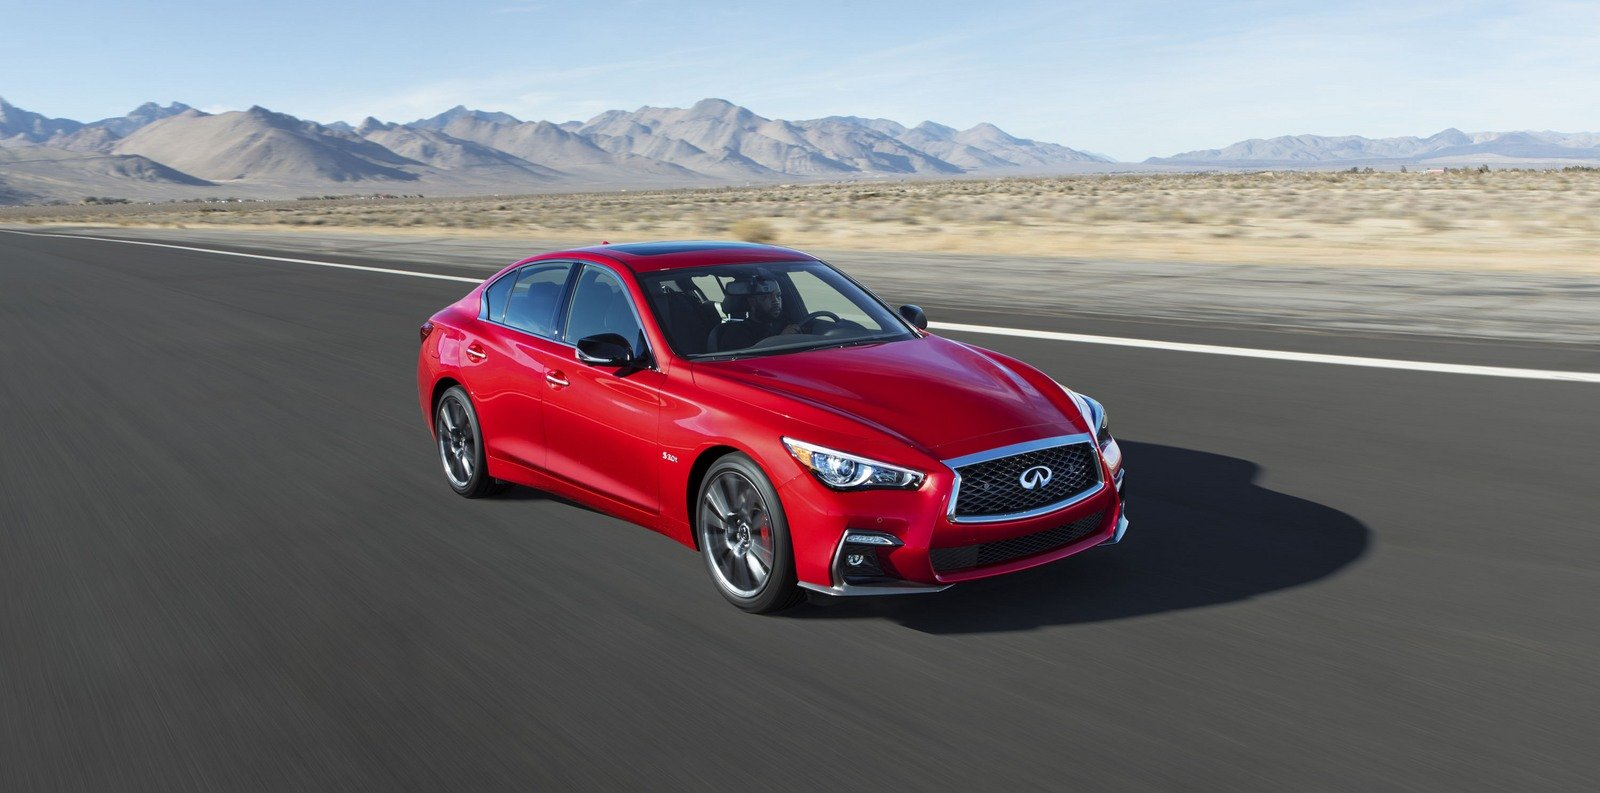 2018 infiniti q50 picture 708077 car review top speed. Black Bedroom Furniture Sets. Home Design Ideas